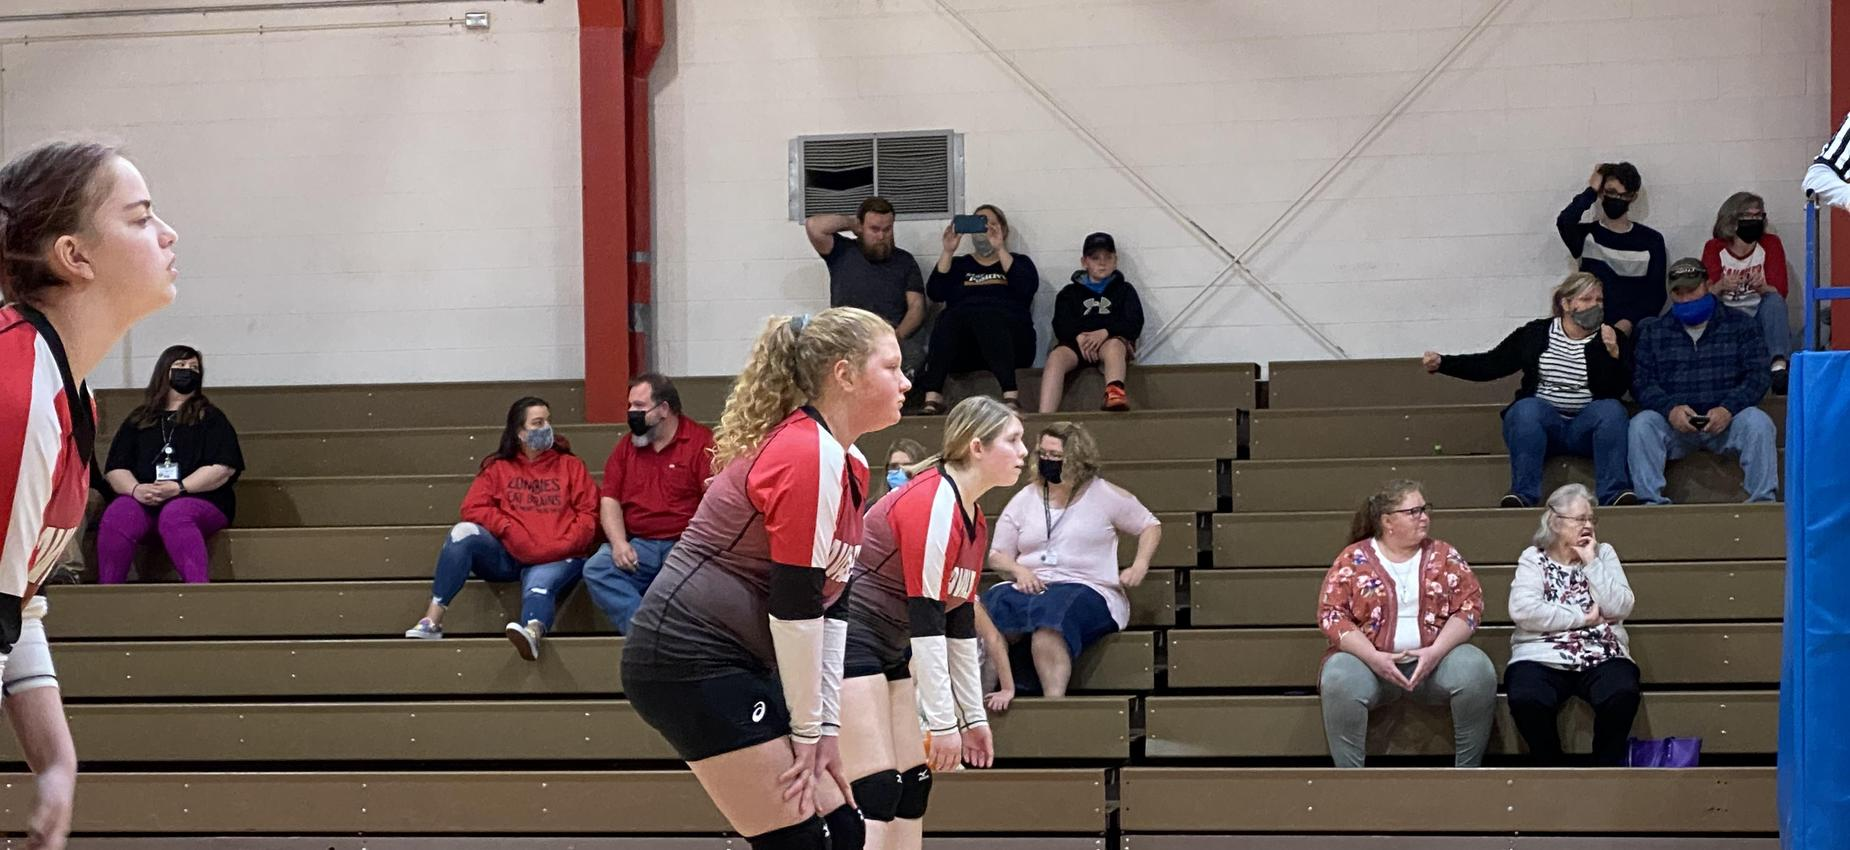 Two volleyball players wait for a serve.